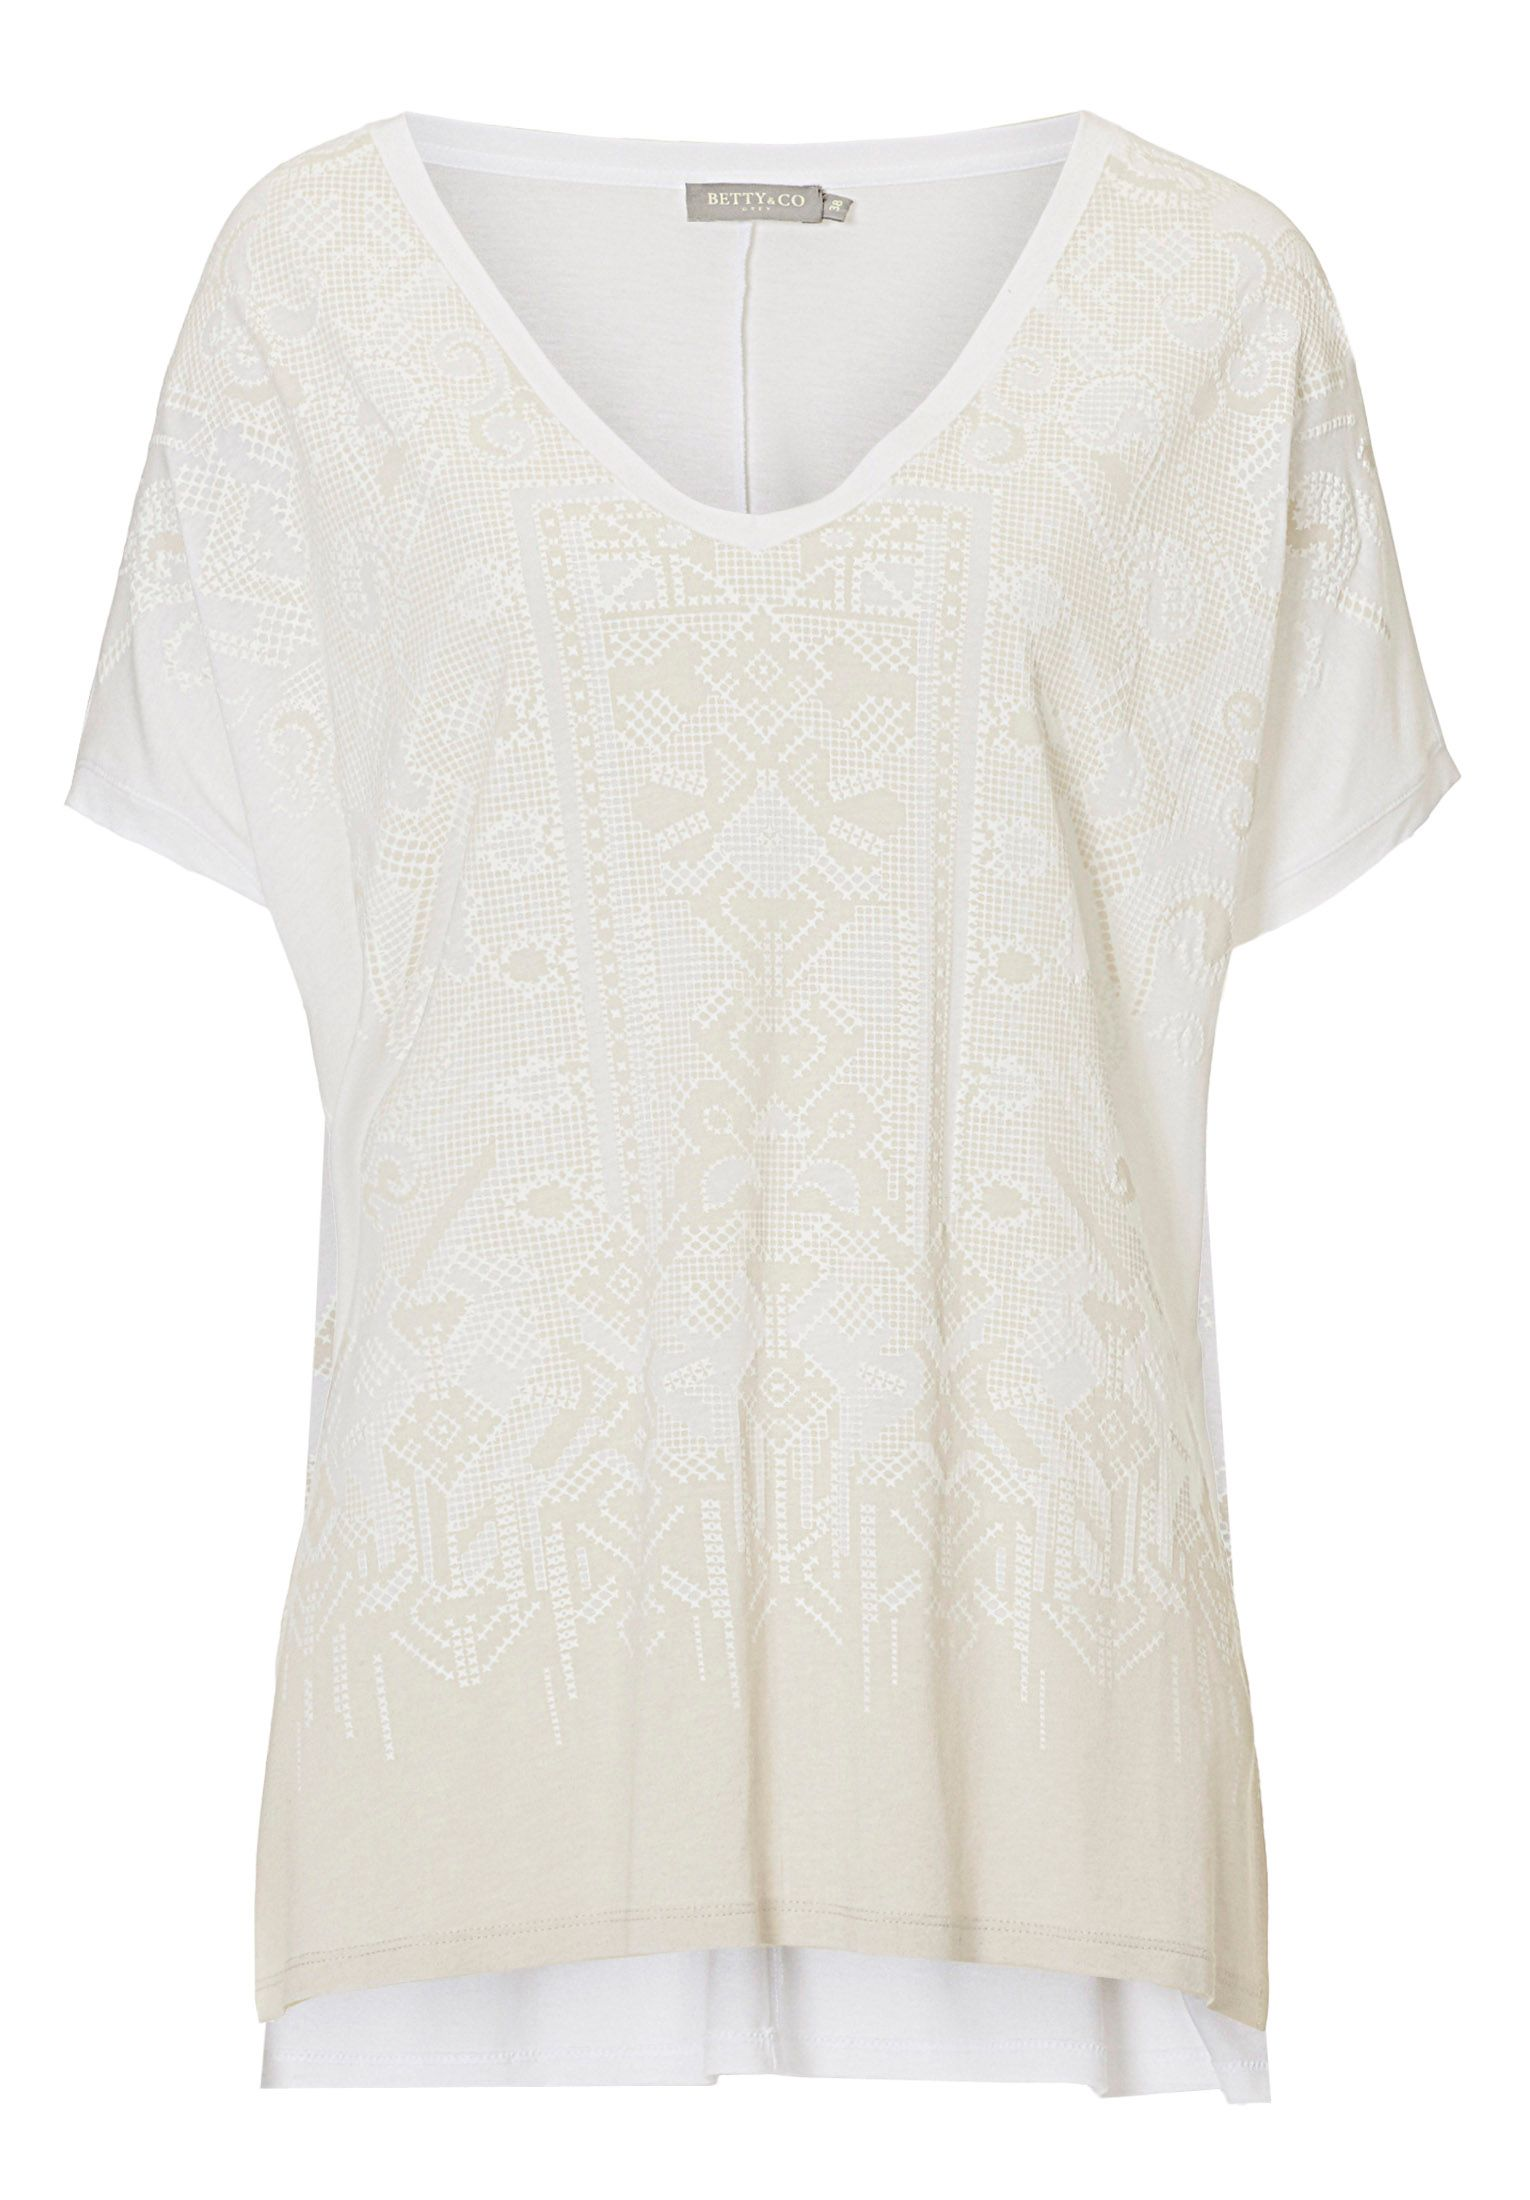 Betty & Co. V-neck transfer print top, White